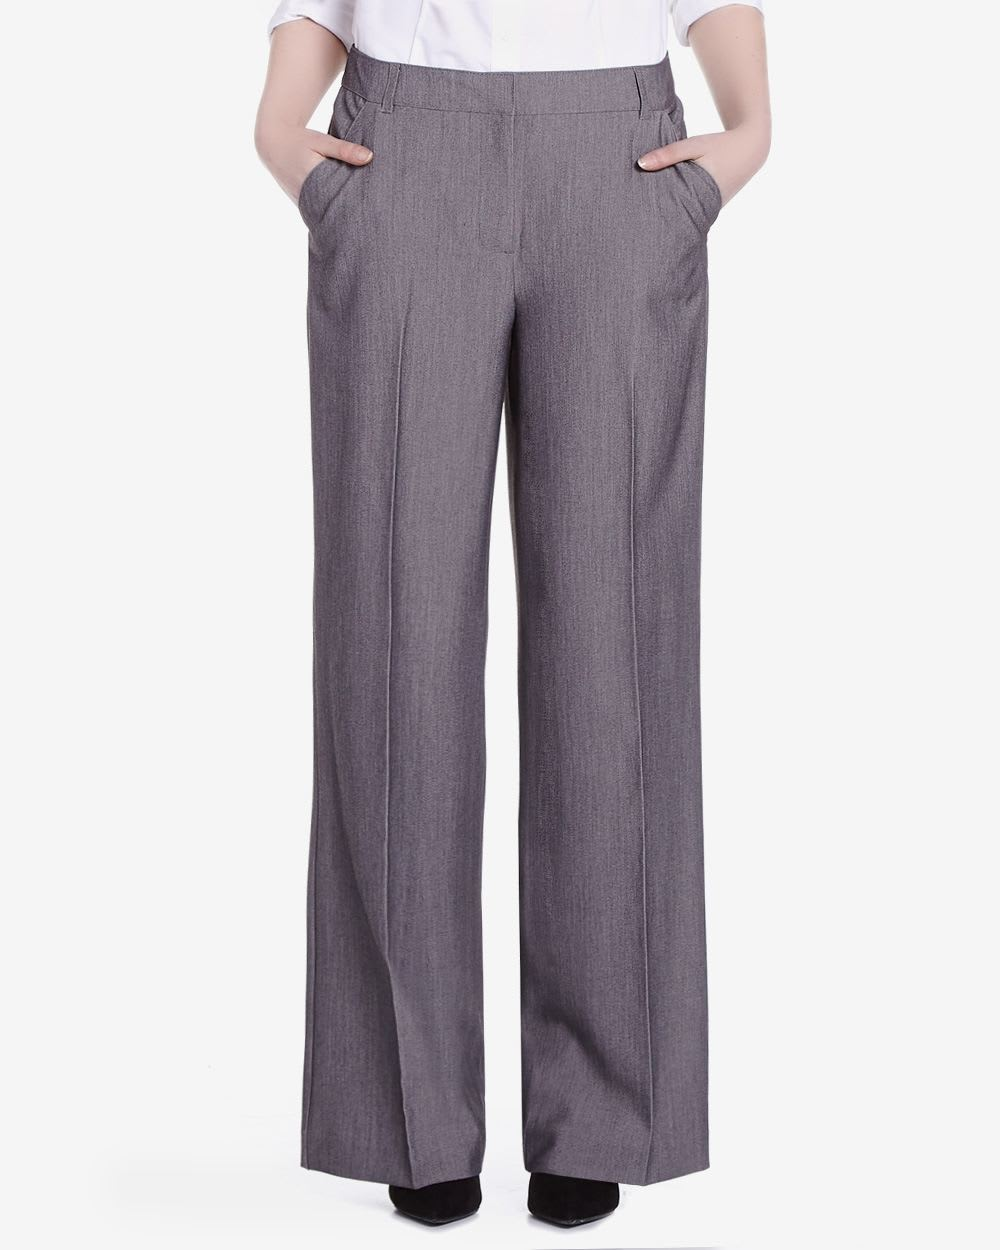 Free shipping on trouser & wide-leg pants for women at it24-ieop.gq Shop for wide-leg pants & trousers in the latest colors & prints from top brands like Topshop, it24-ieop.gq, NYDJ, Vince Camuto & more. Enjoy free shipping & returns.